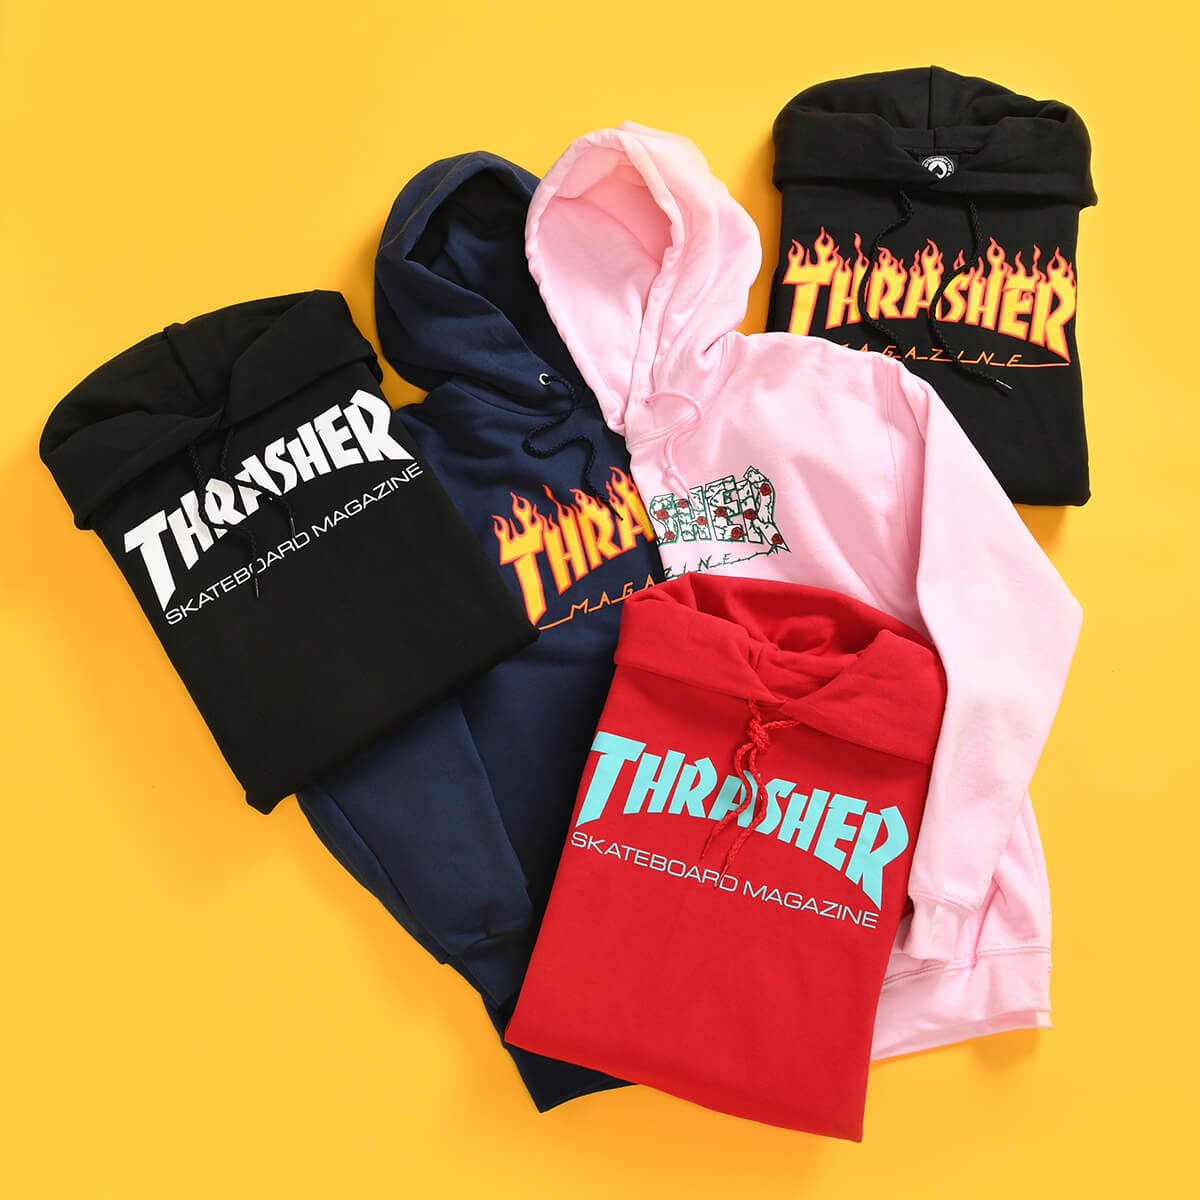 NEW ARRIVAL HOODIES FROM THRASHER - SHOP THRASHER